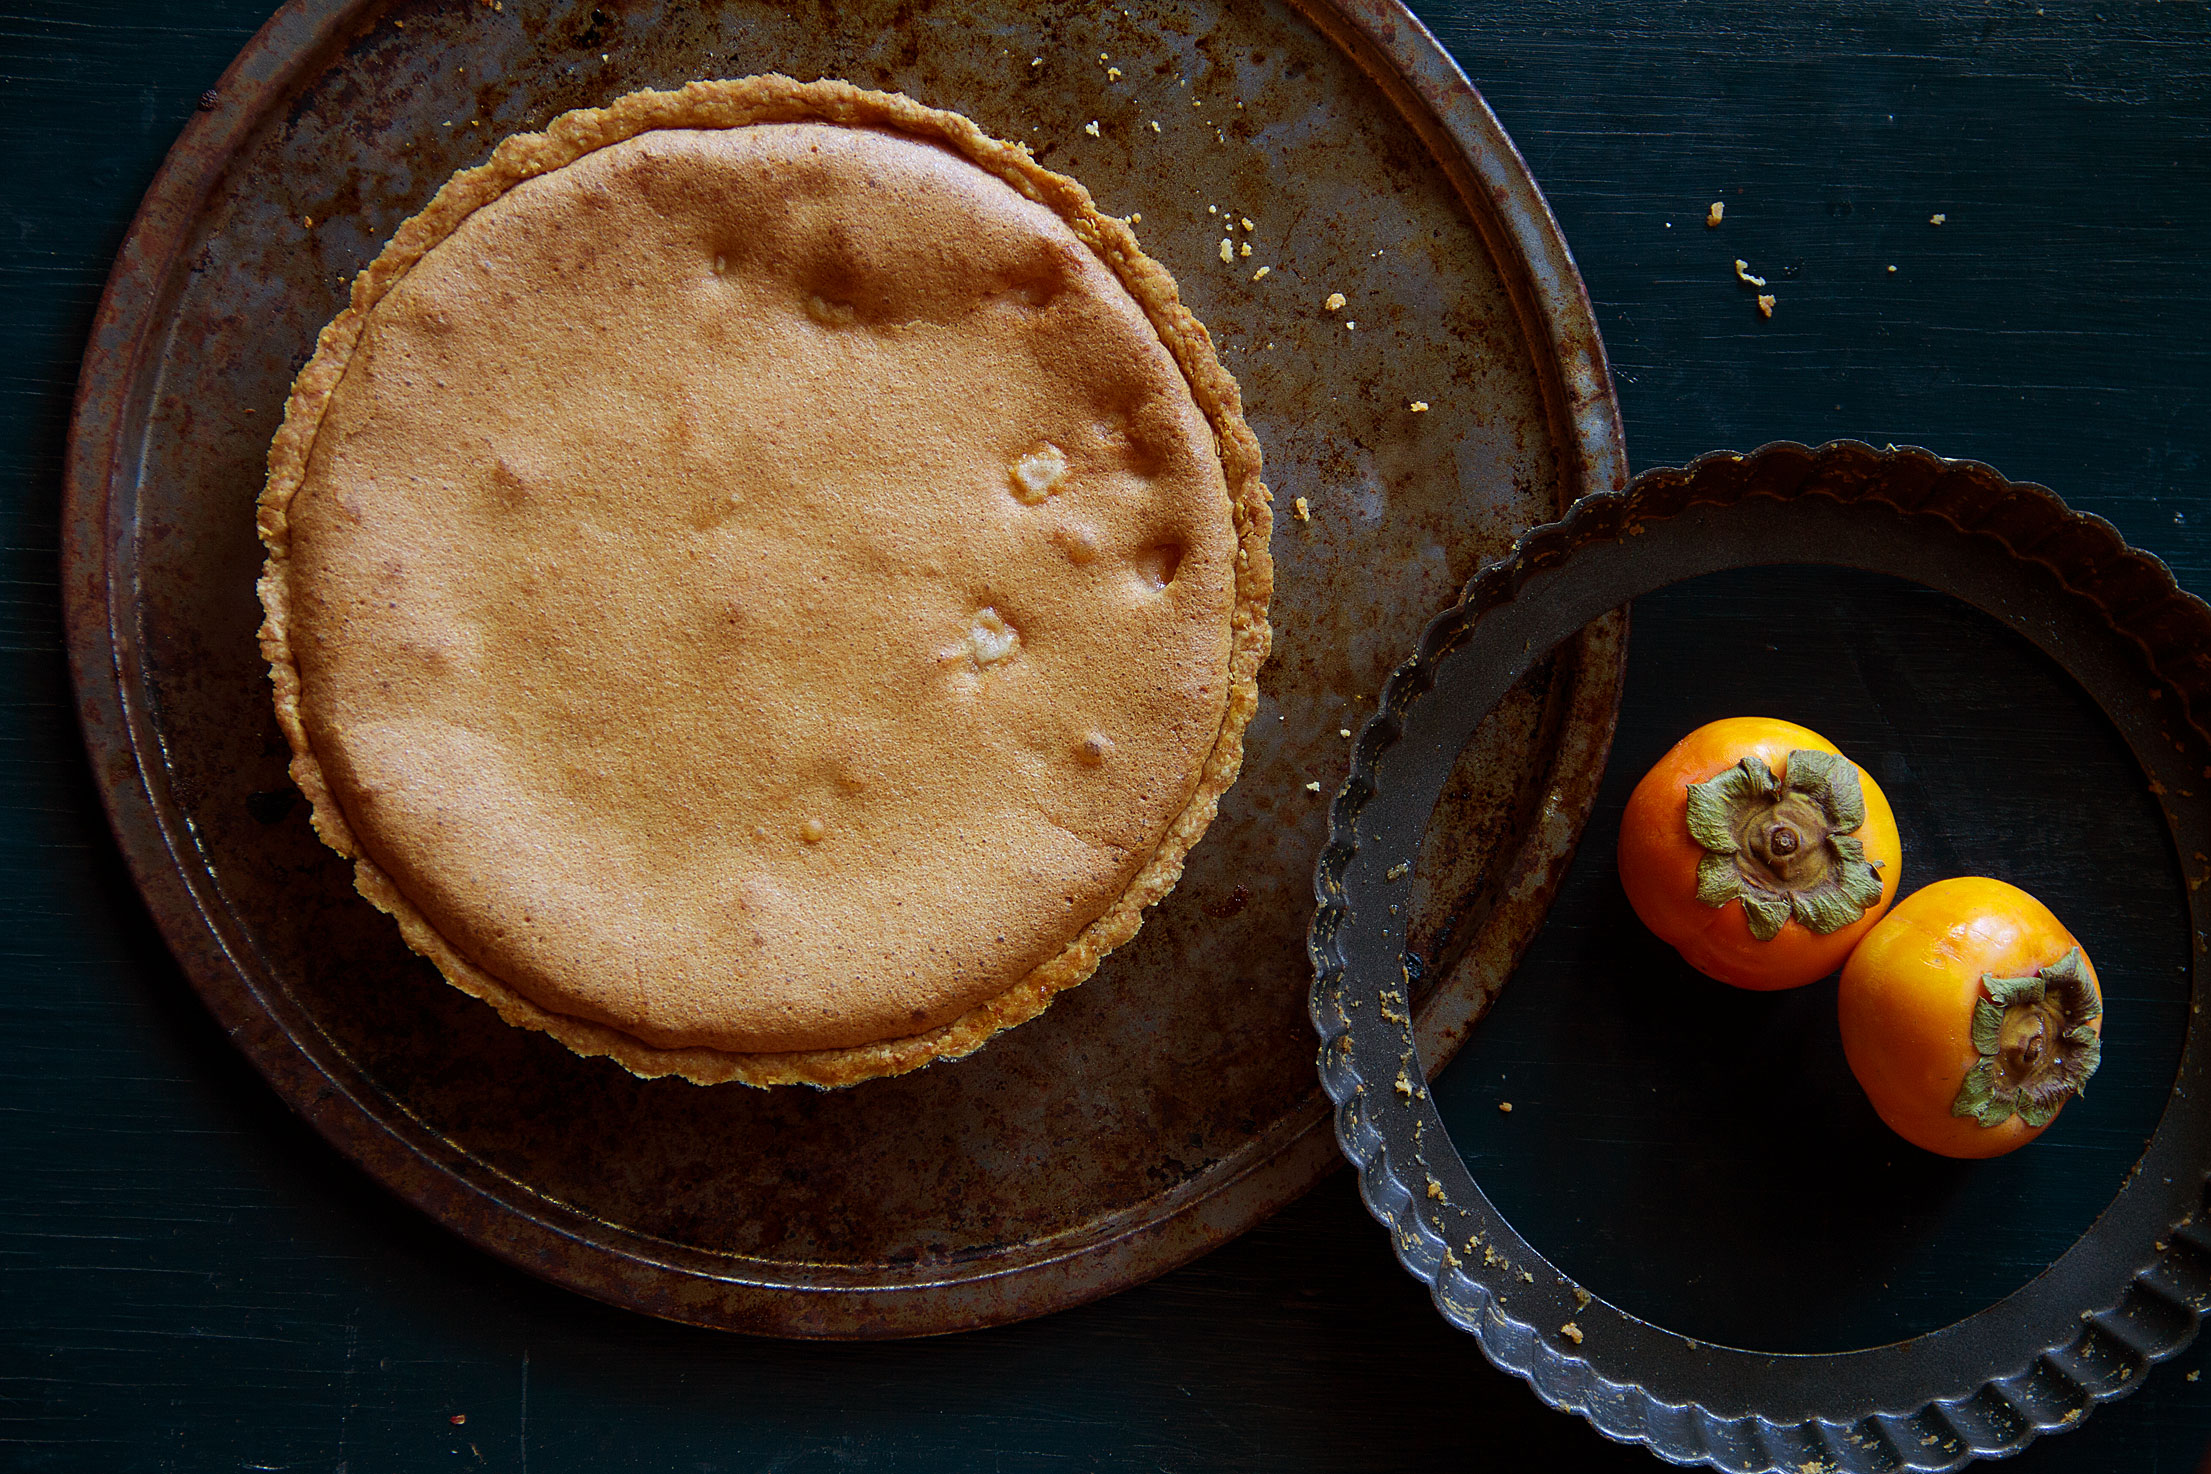 Persimmon Tart with Brown Butter Batter